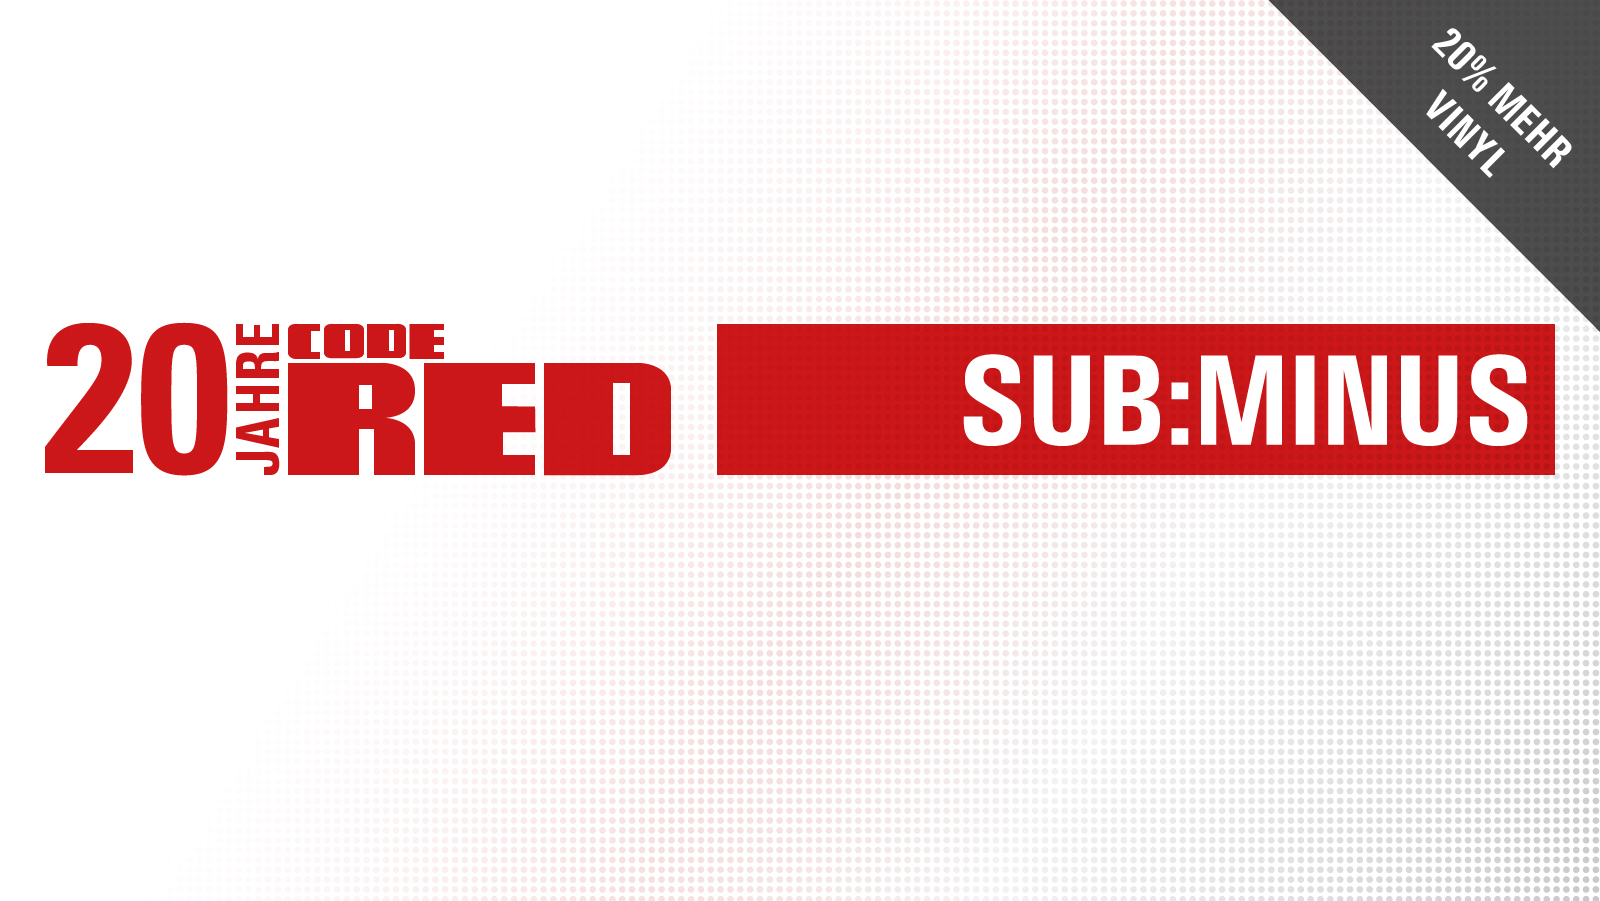 20-jahre-code-red-subminus